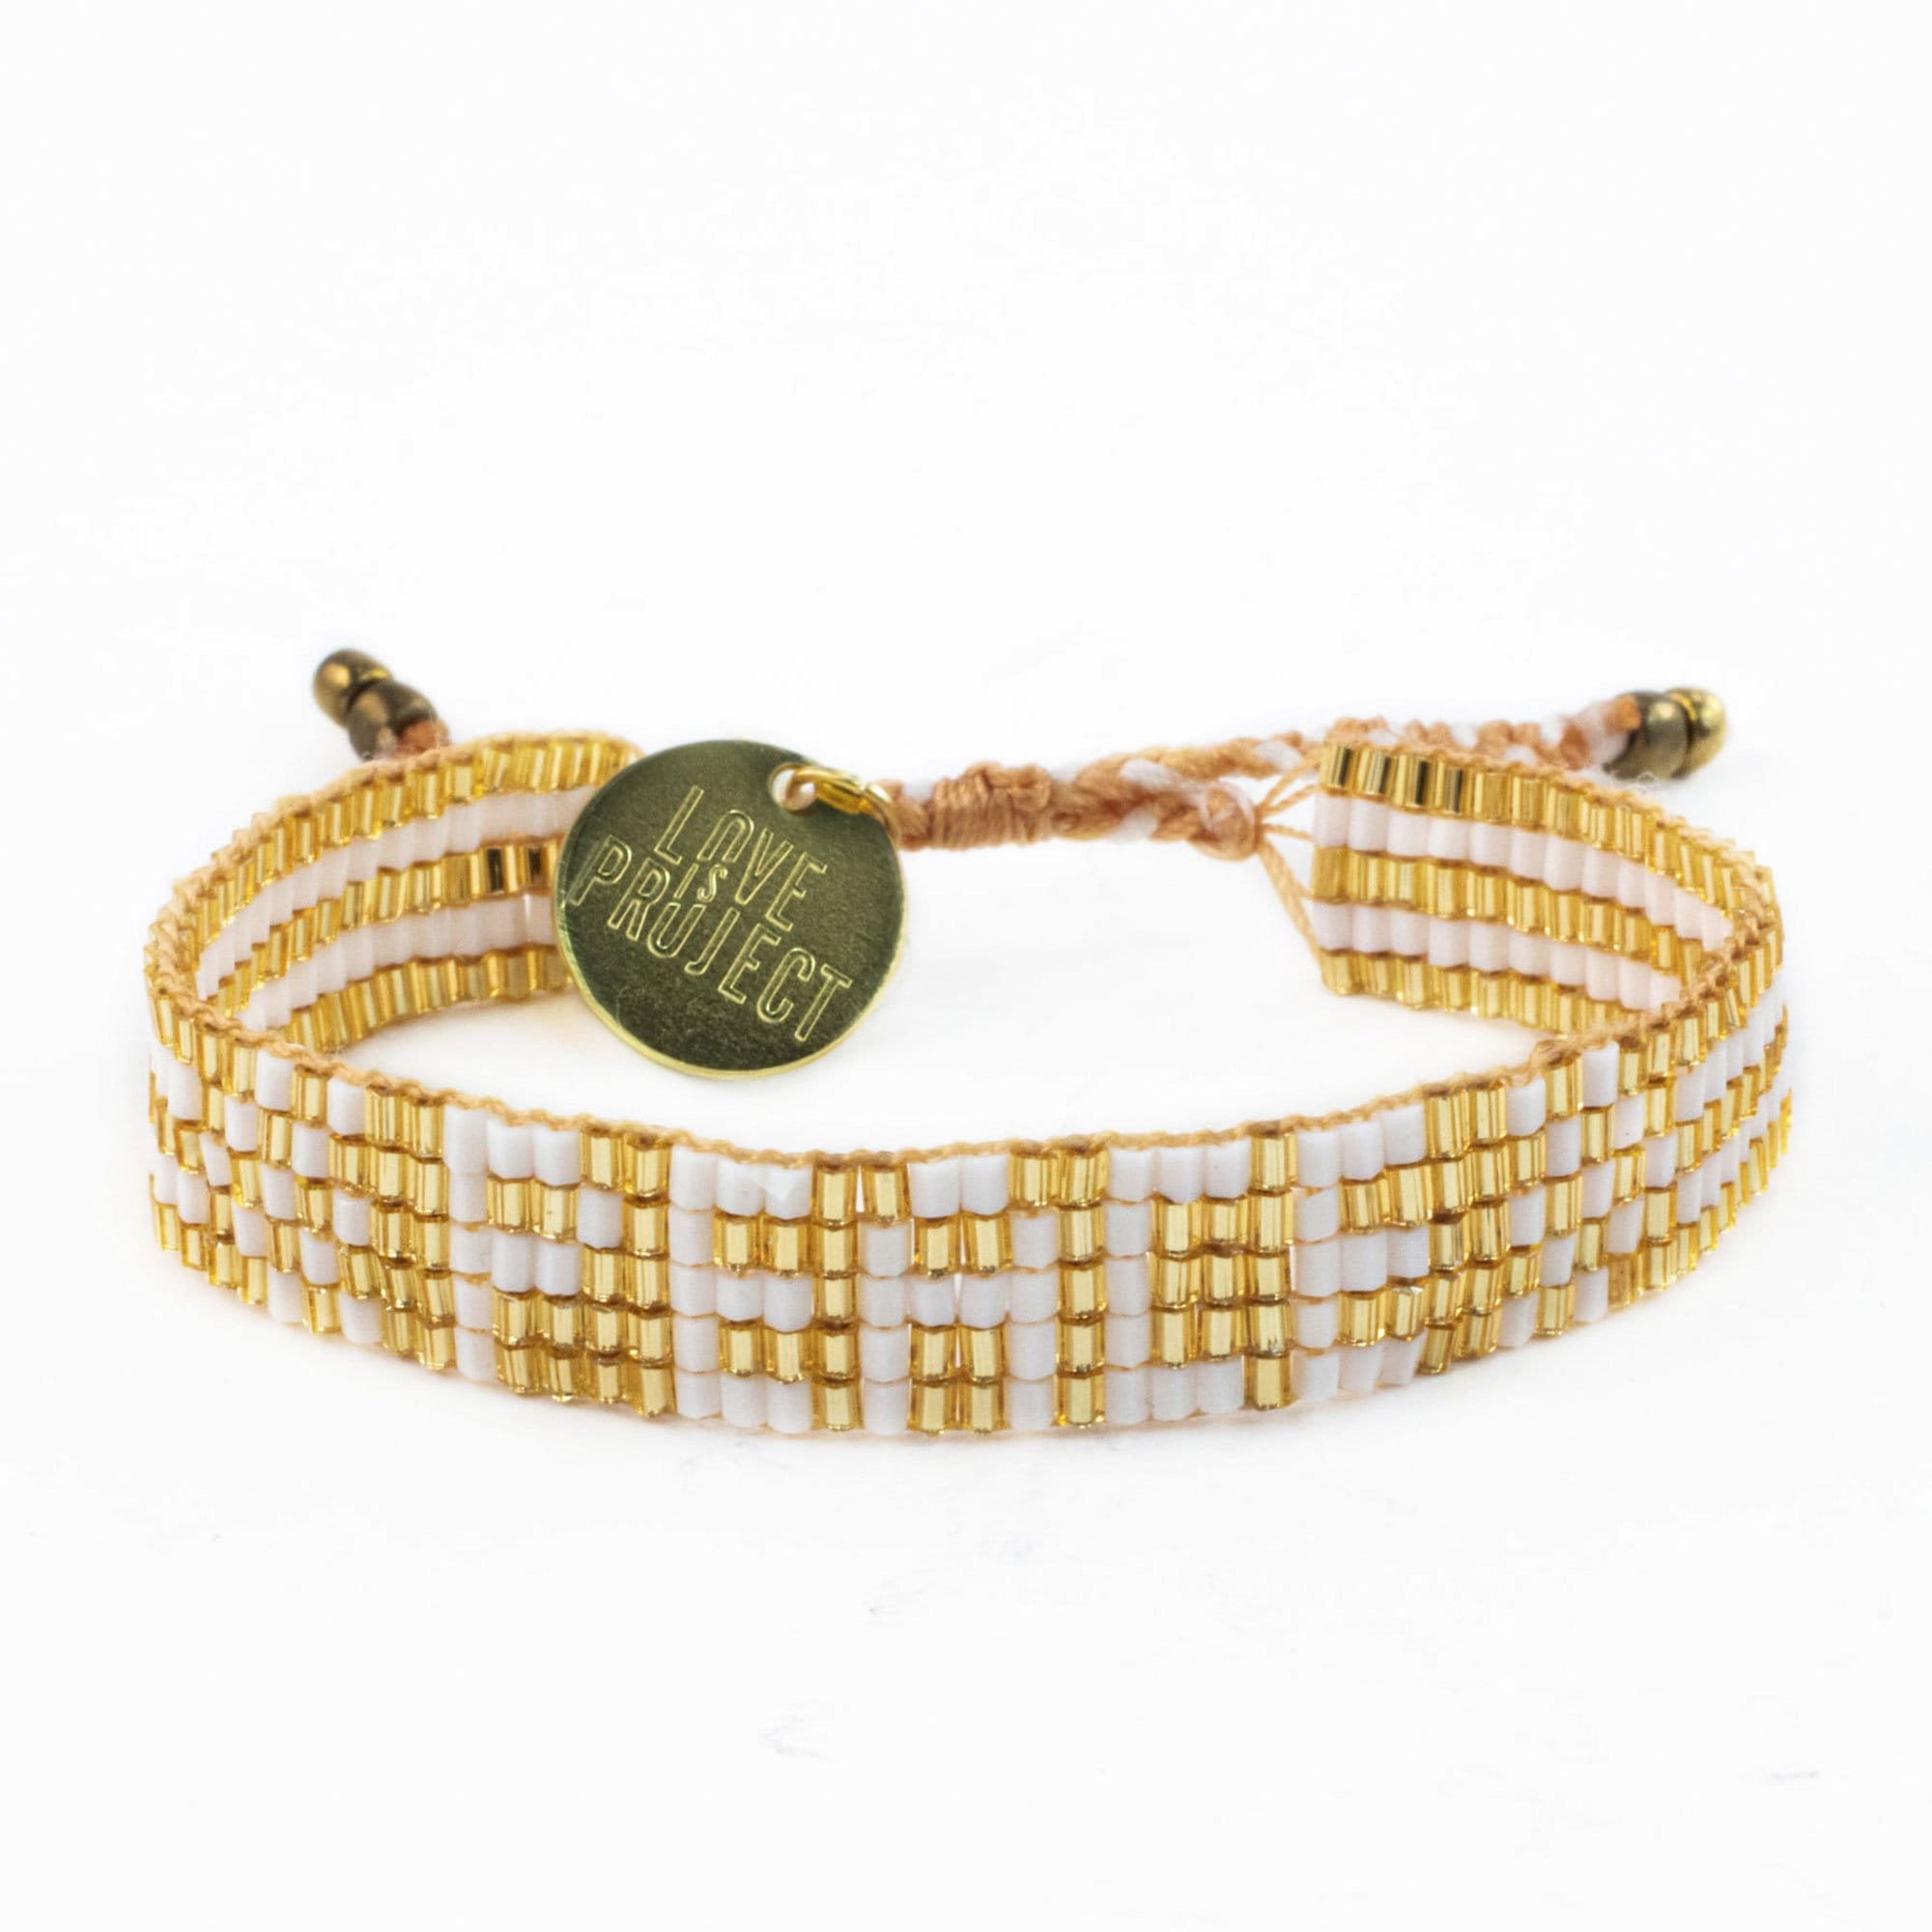 New Arrival Prince of Peace - Seed Bead PEACE Bracelet  - Gold & White